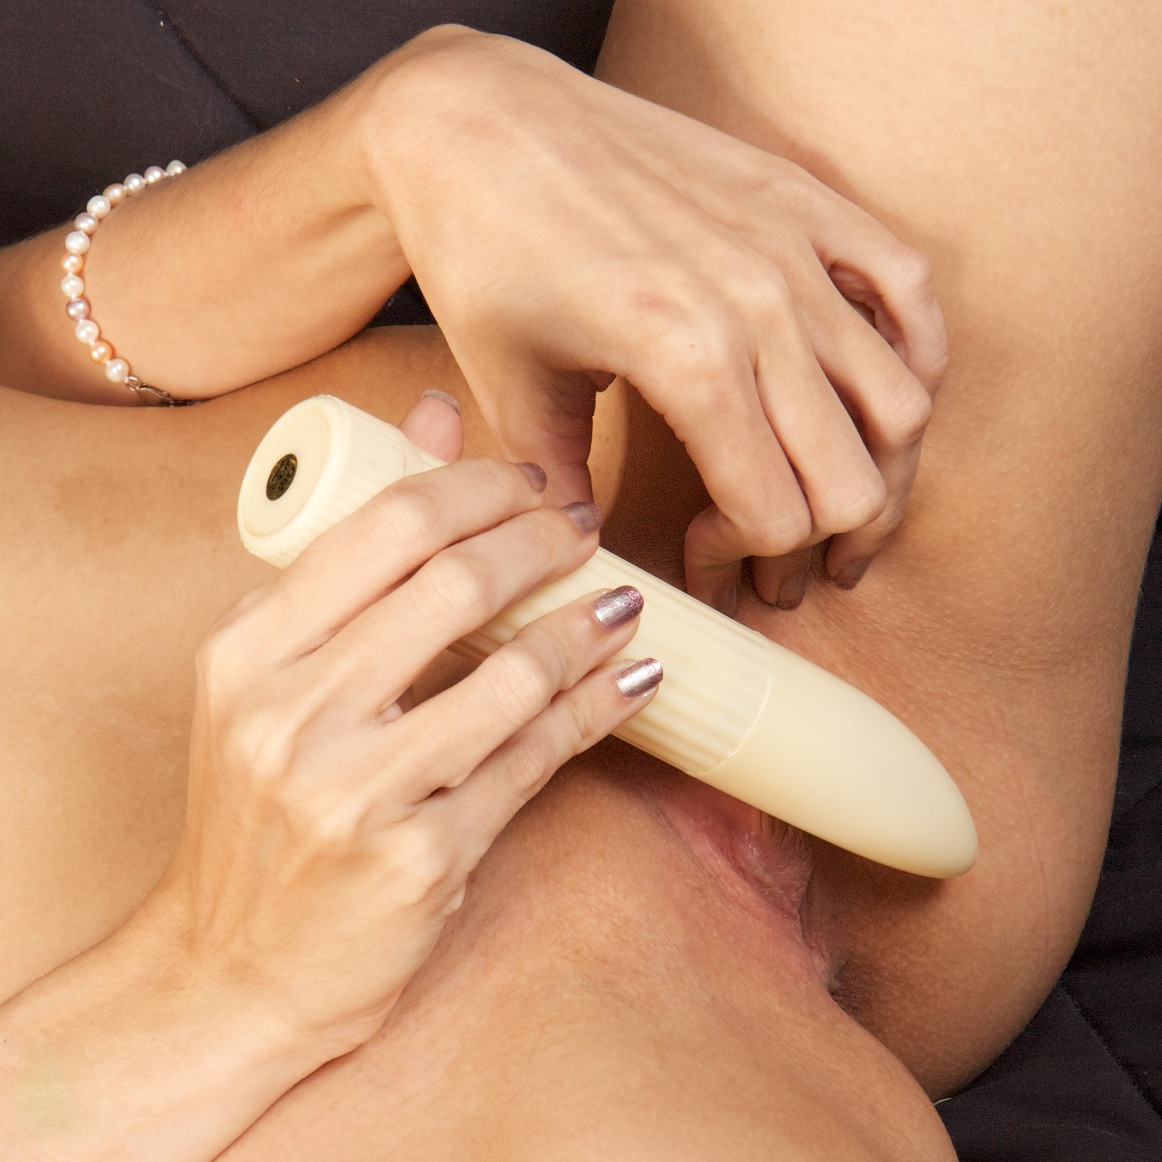 Use of vibrator on clitoris